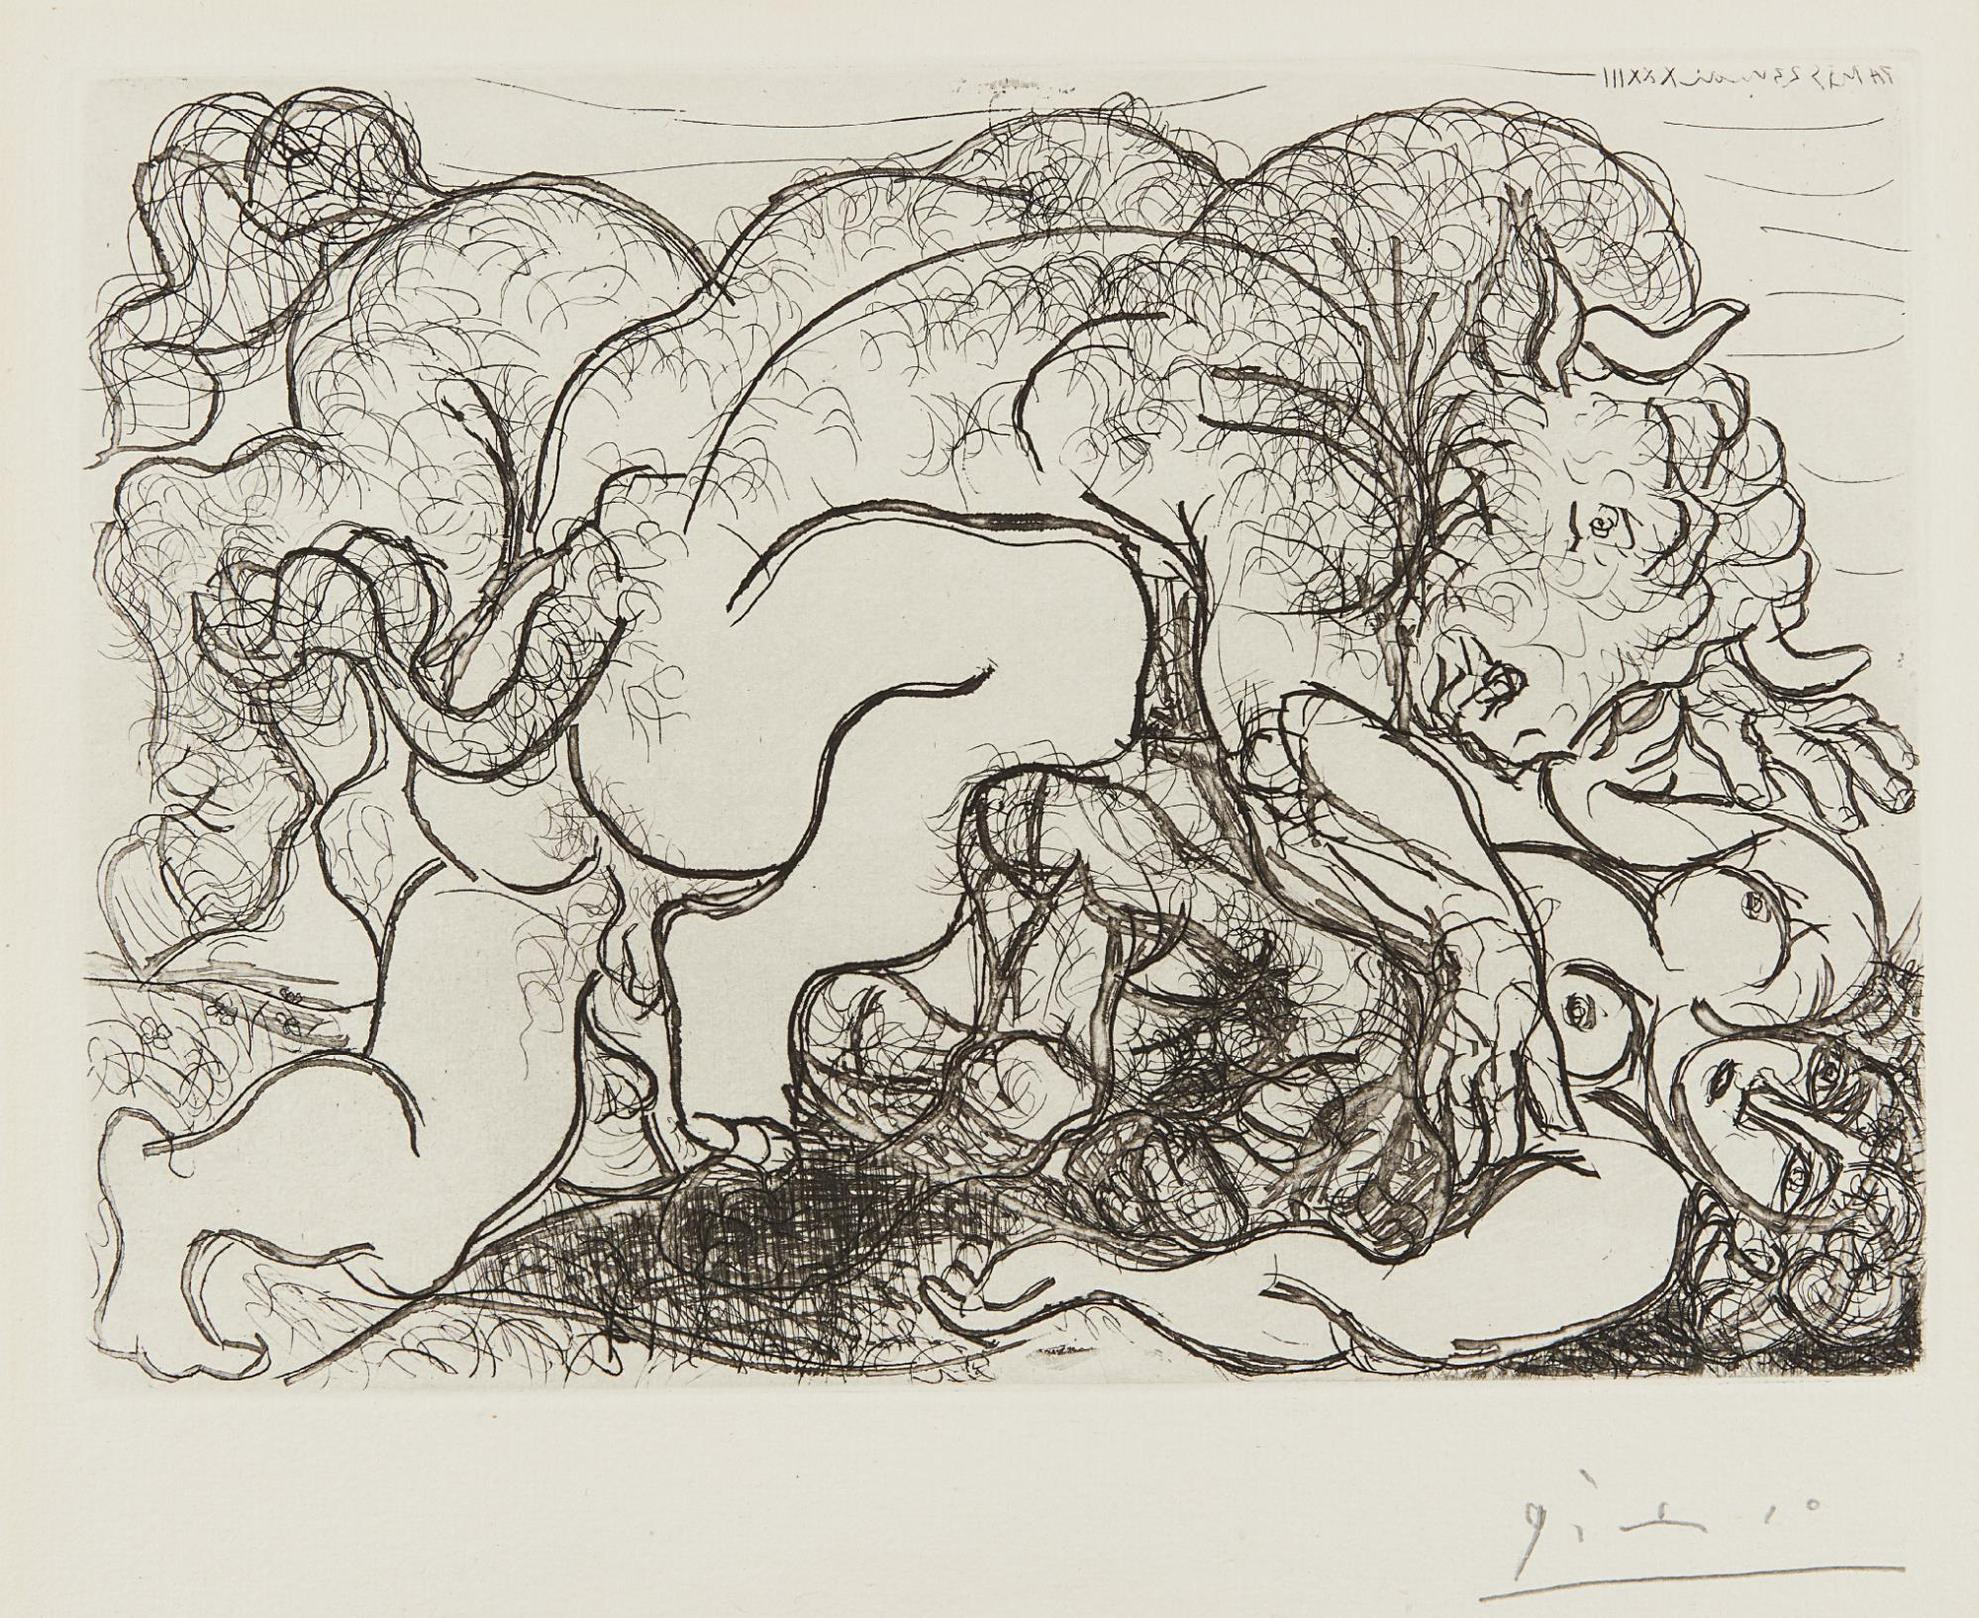 Pablo Picasso-Minotaure Attaquant Une Amazone (Minotaure Attacking An Amazon), Plate 87 From La Suite Vollard-1933